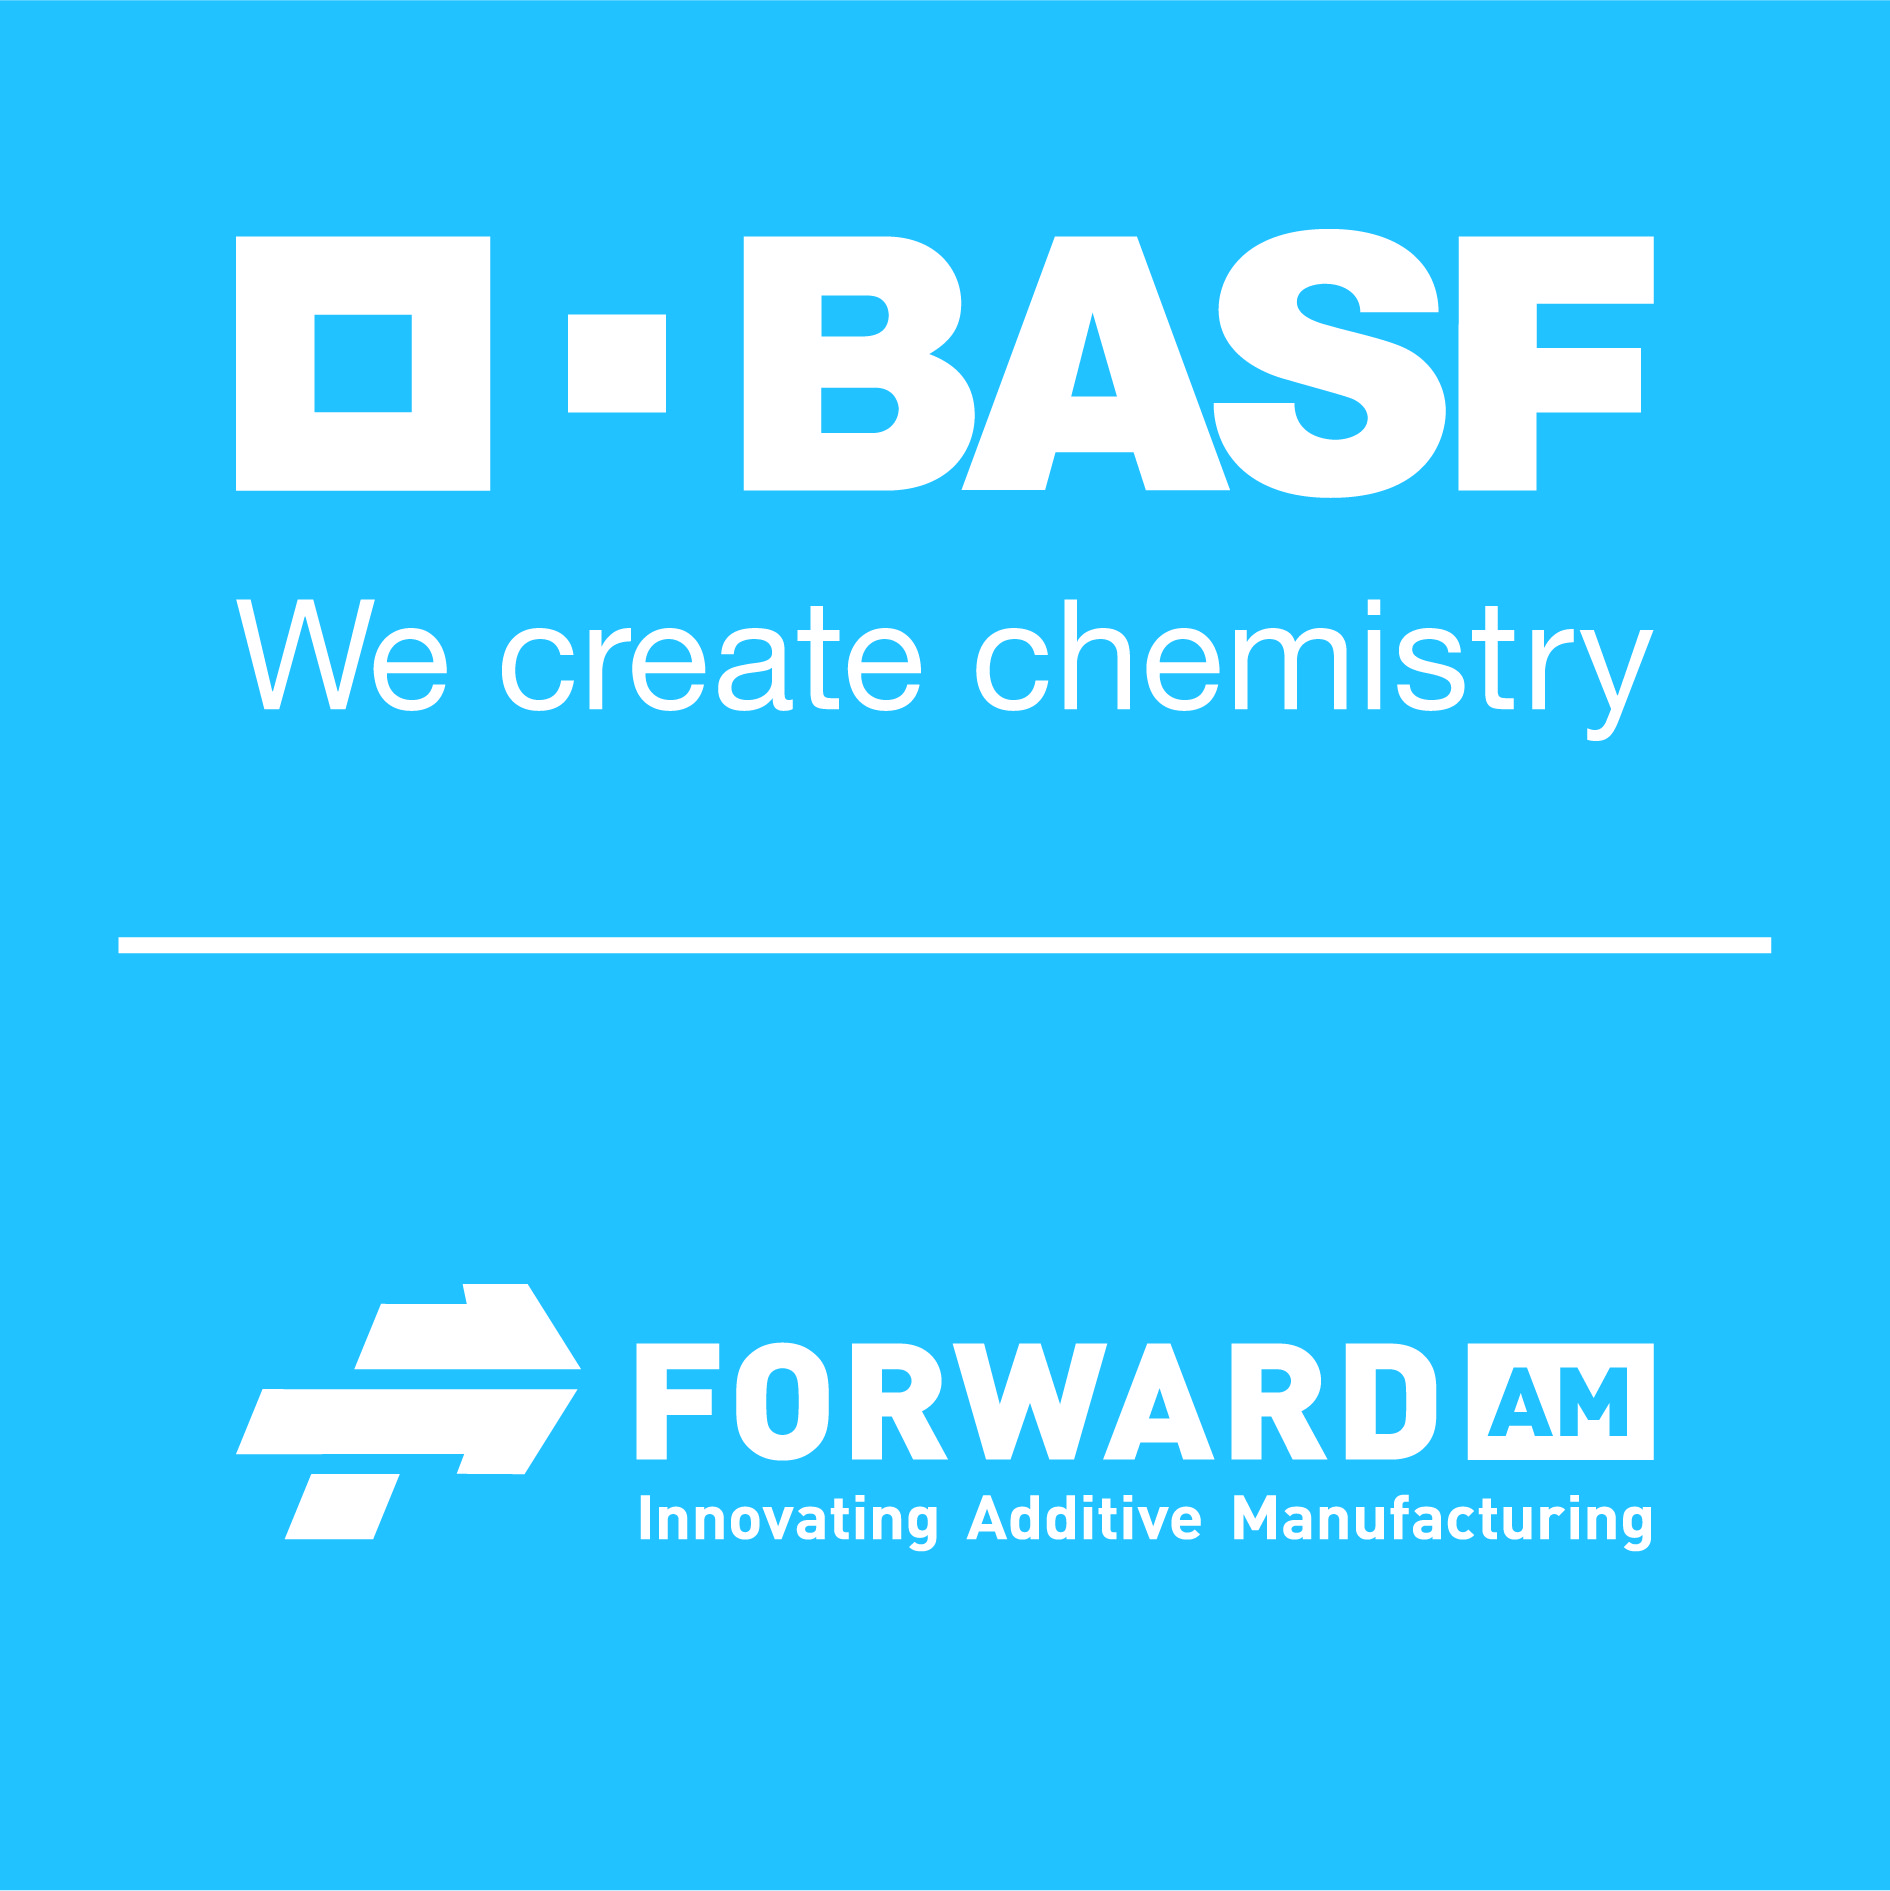 BASF Forward AM